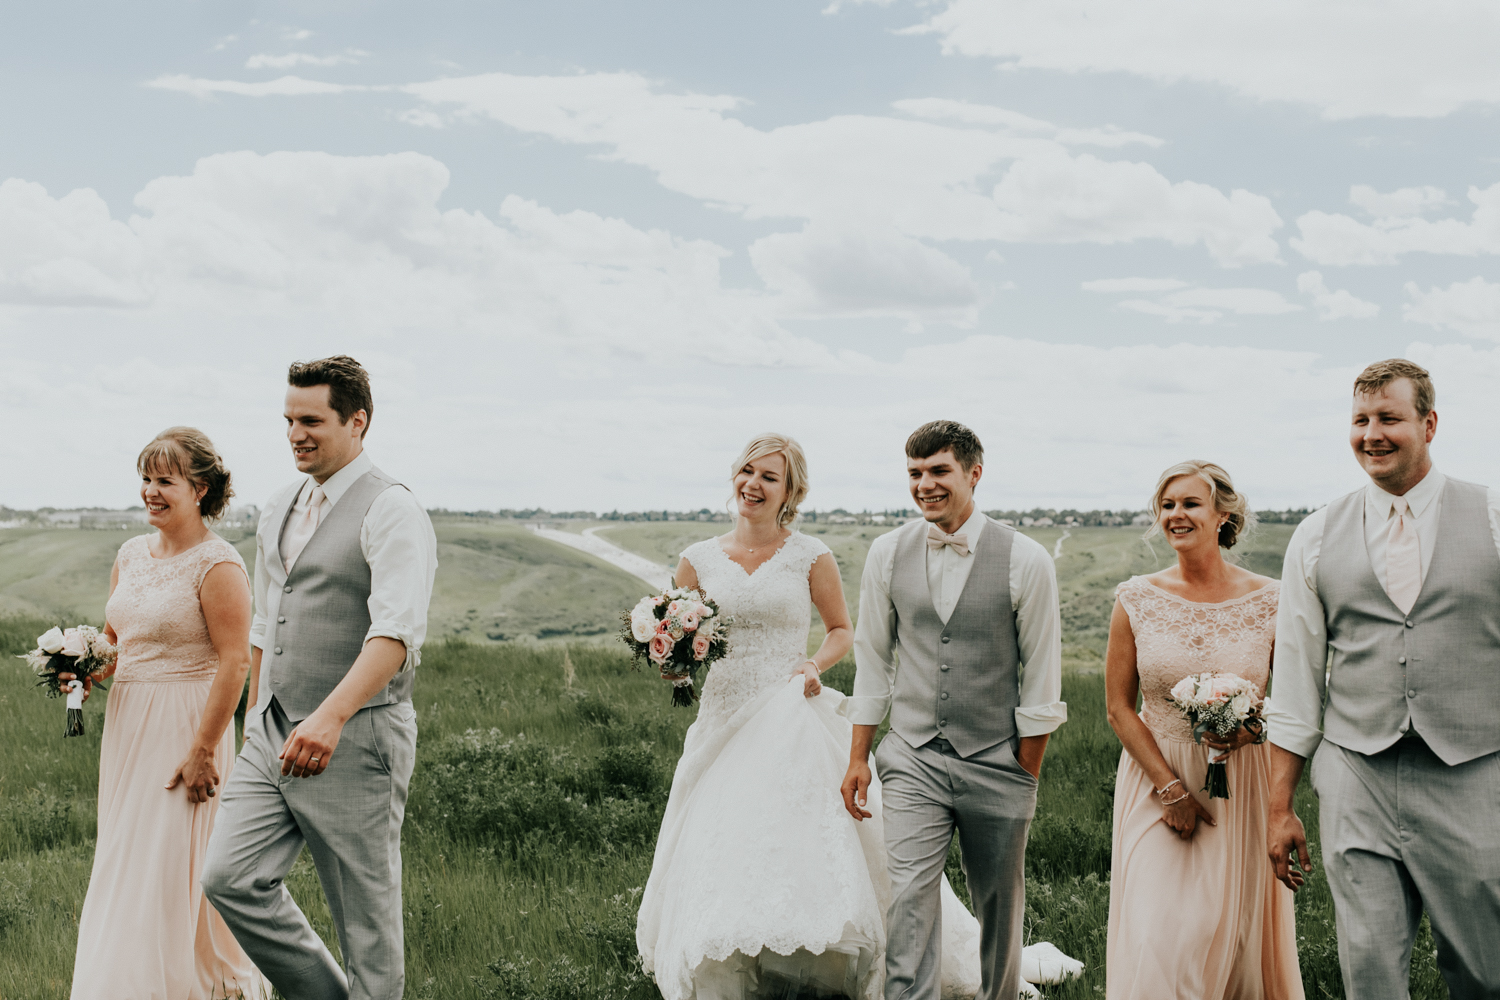 norland-estate-wedding-lethbridge-photography-love-and-be-loved-photographer-picture-image-photo-75.jpg